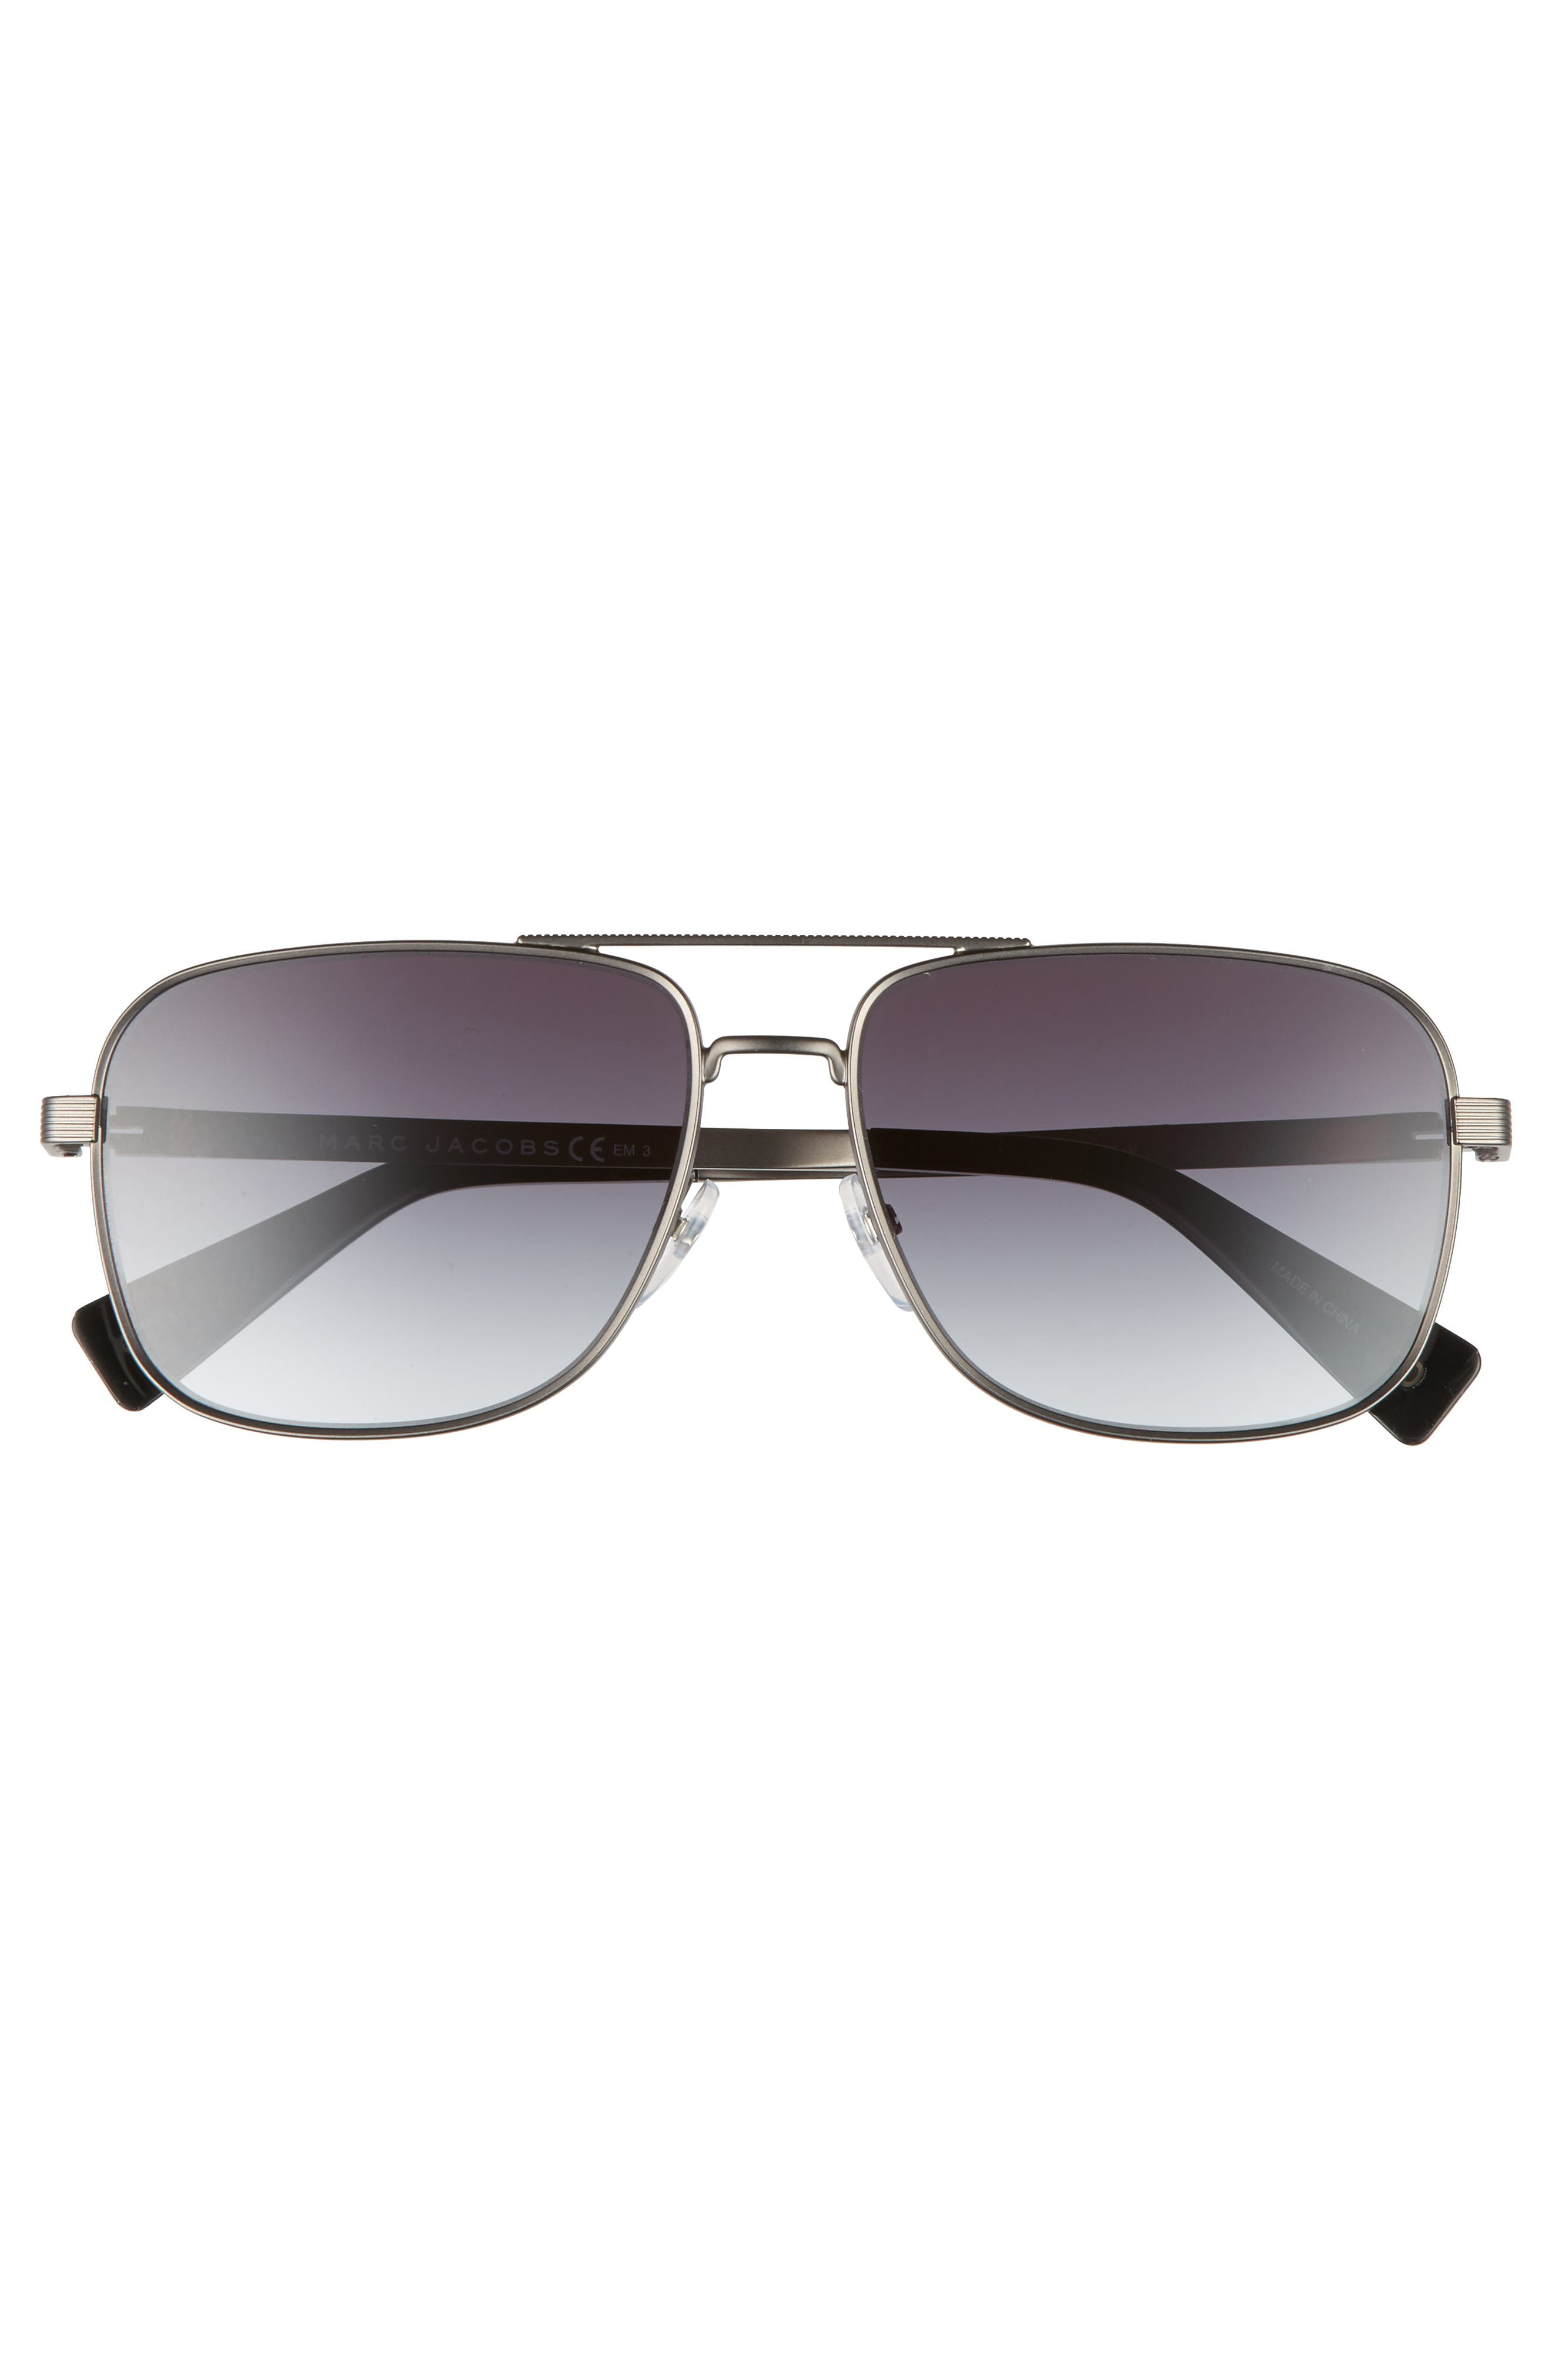 59mm Gradient Navigator Sunglasses,                             Alternate thumbnail 3, color,                             SEMI MATTE DARK RUTHENIUM